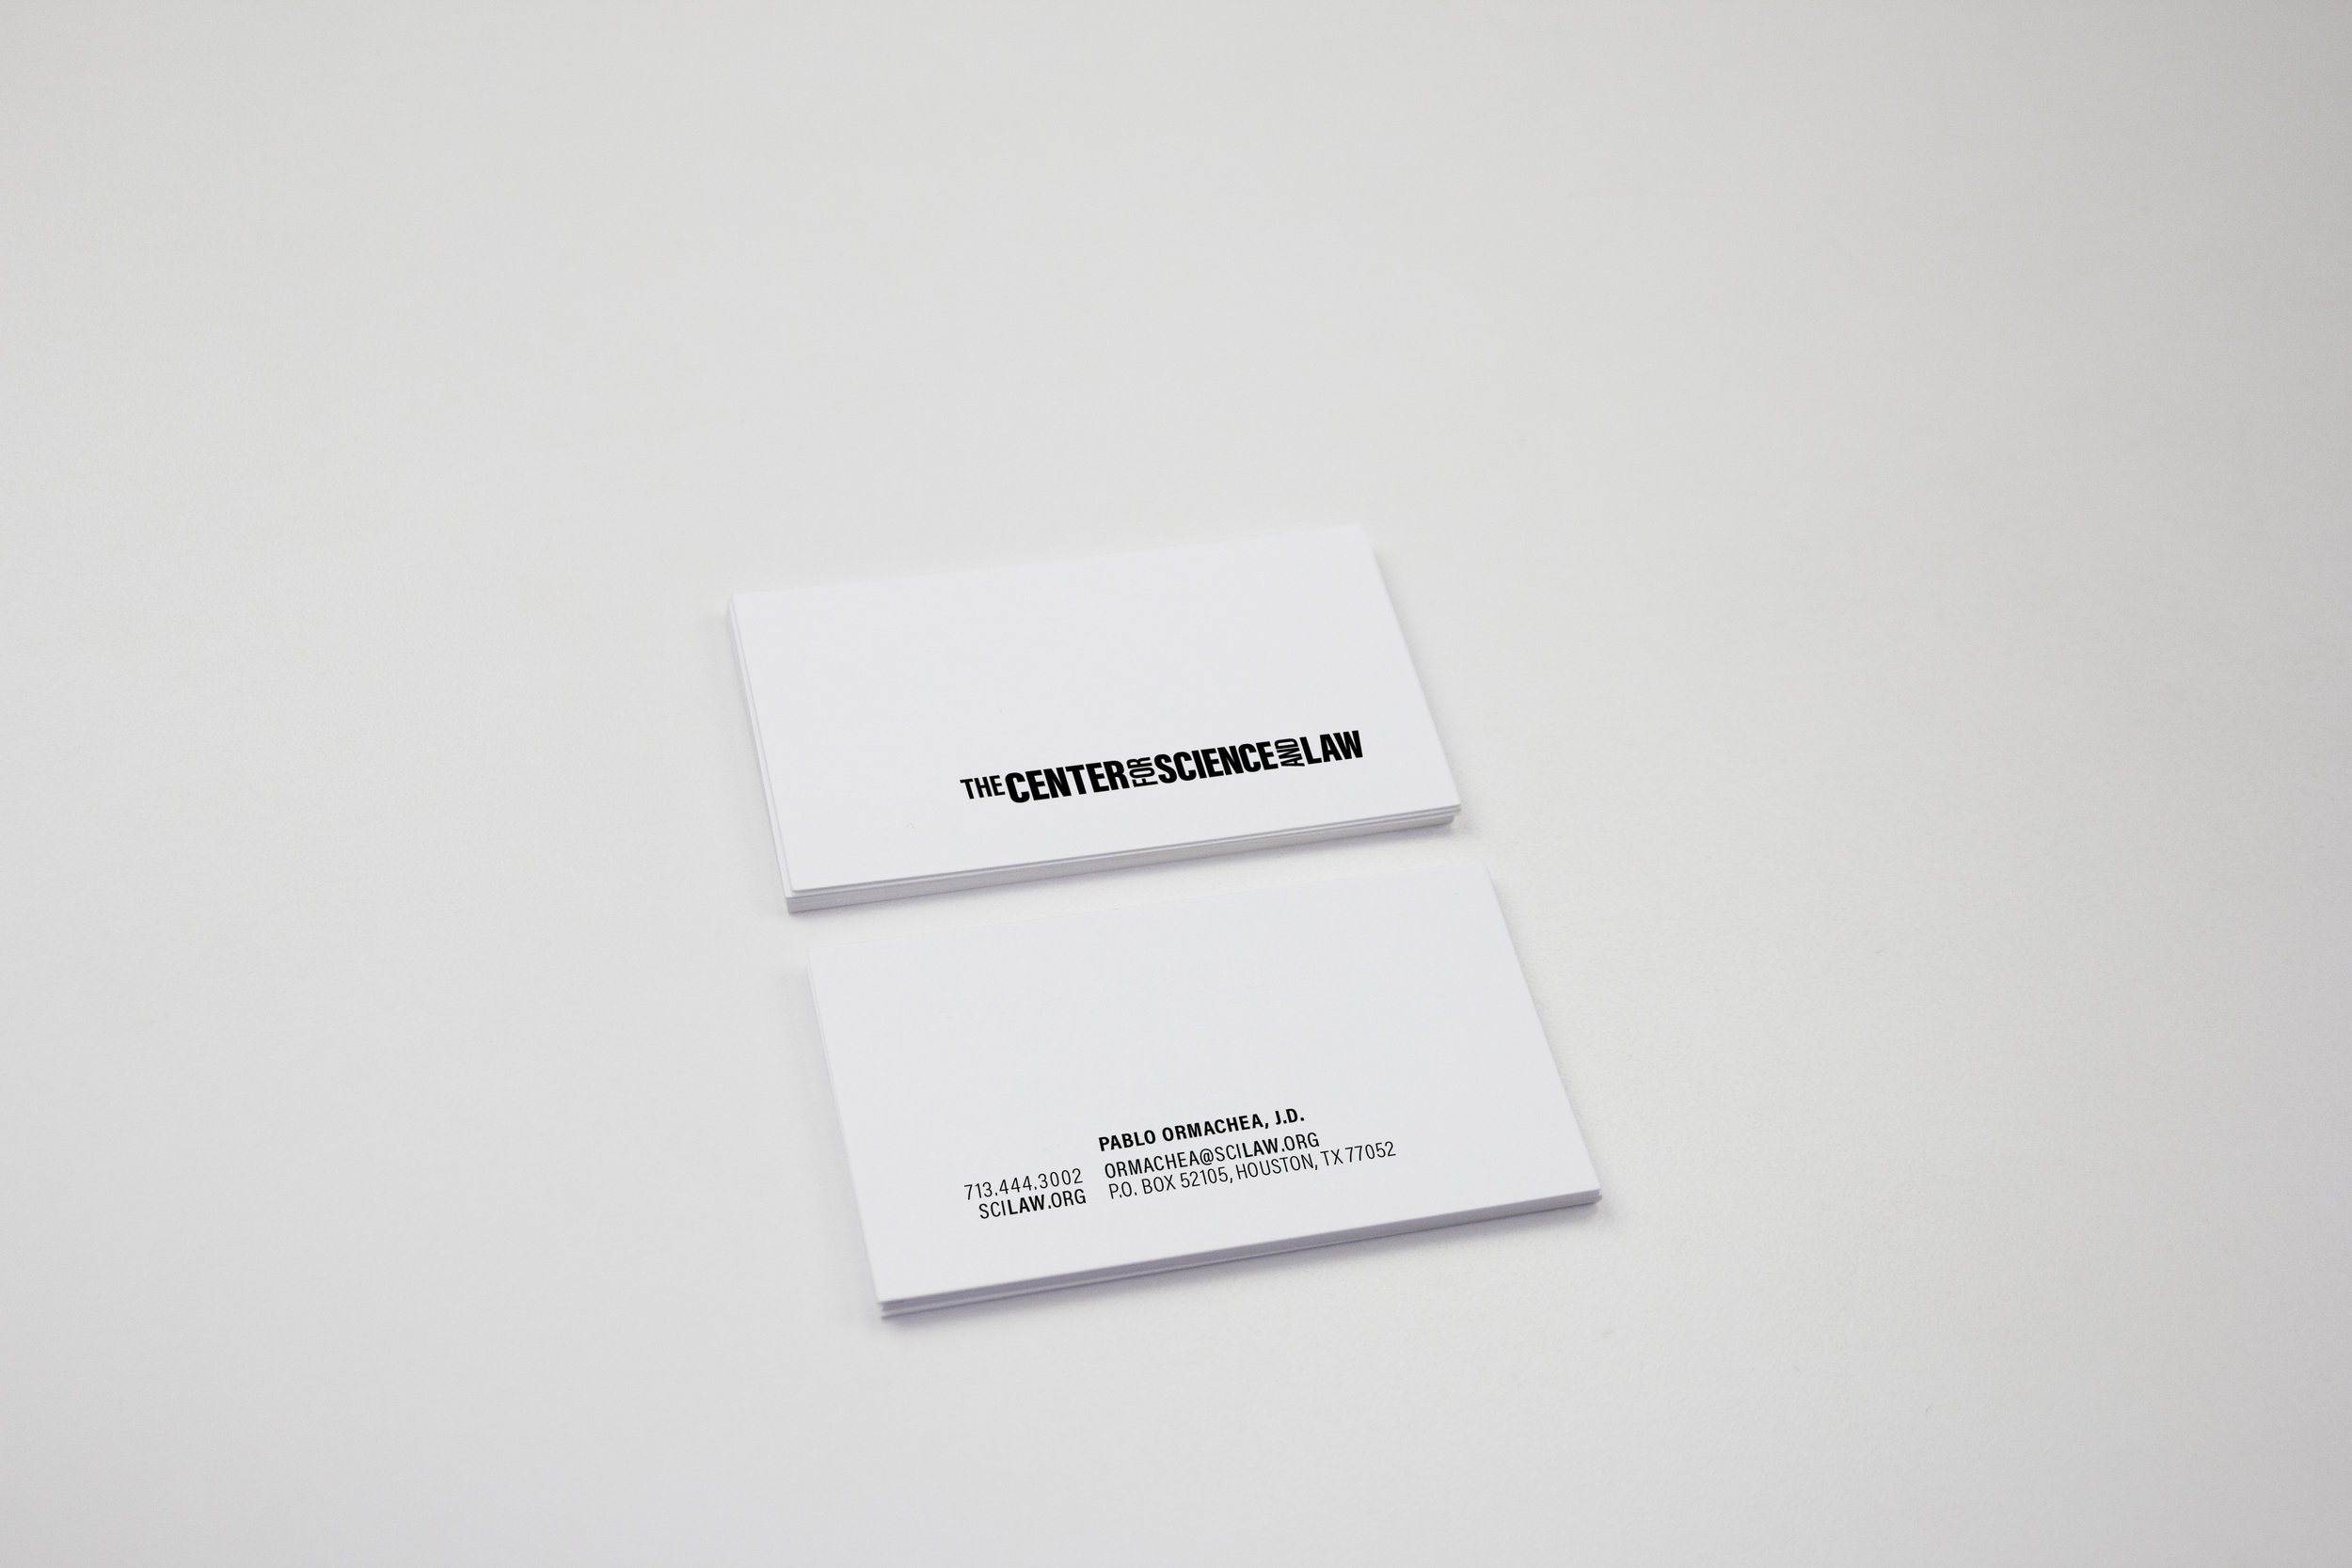 the CENTER FOR SCIENCE AND LAW - branding &implementation design